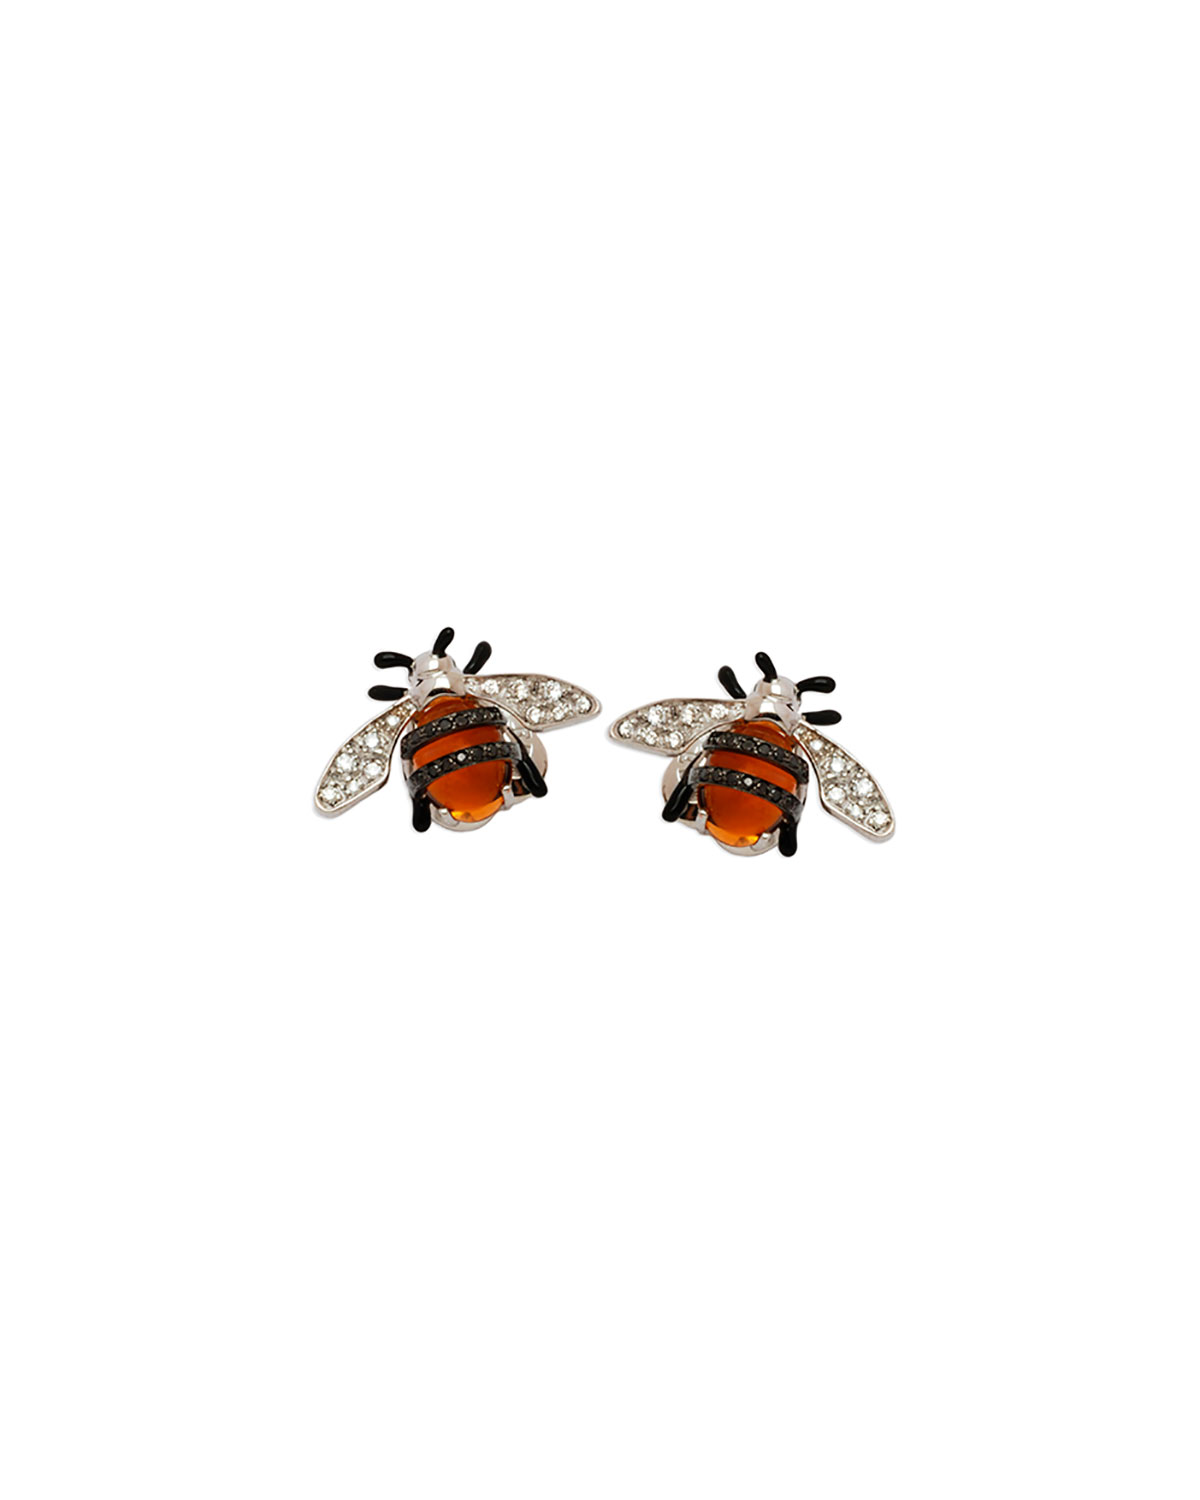 Staurino Fratelli 18k Nature Bumble Bee Stud Earrings